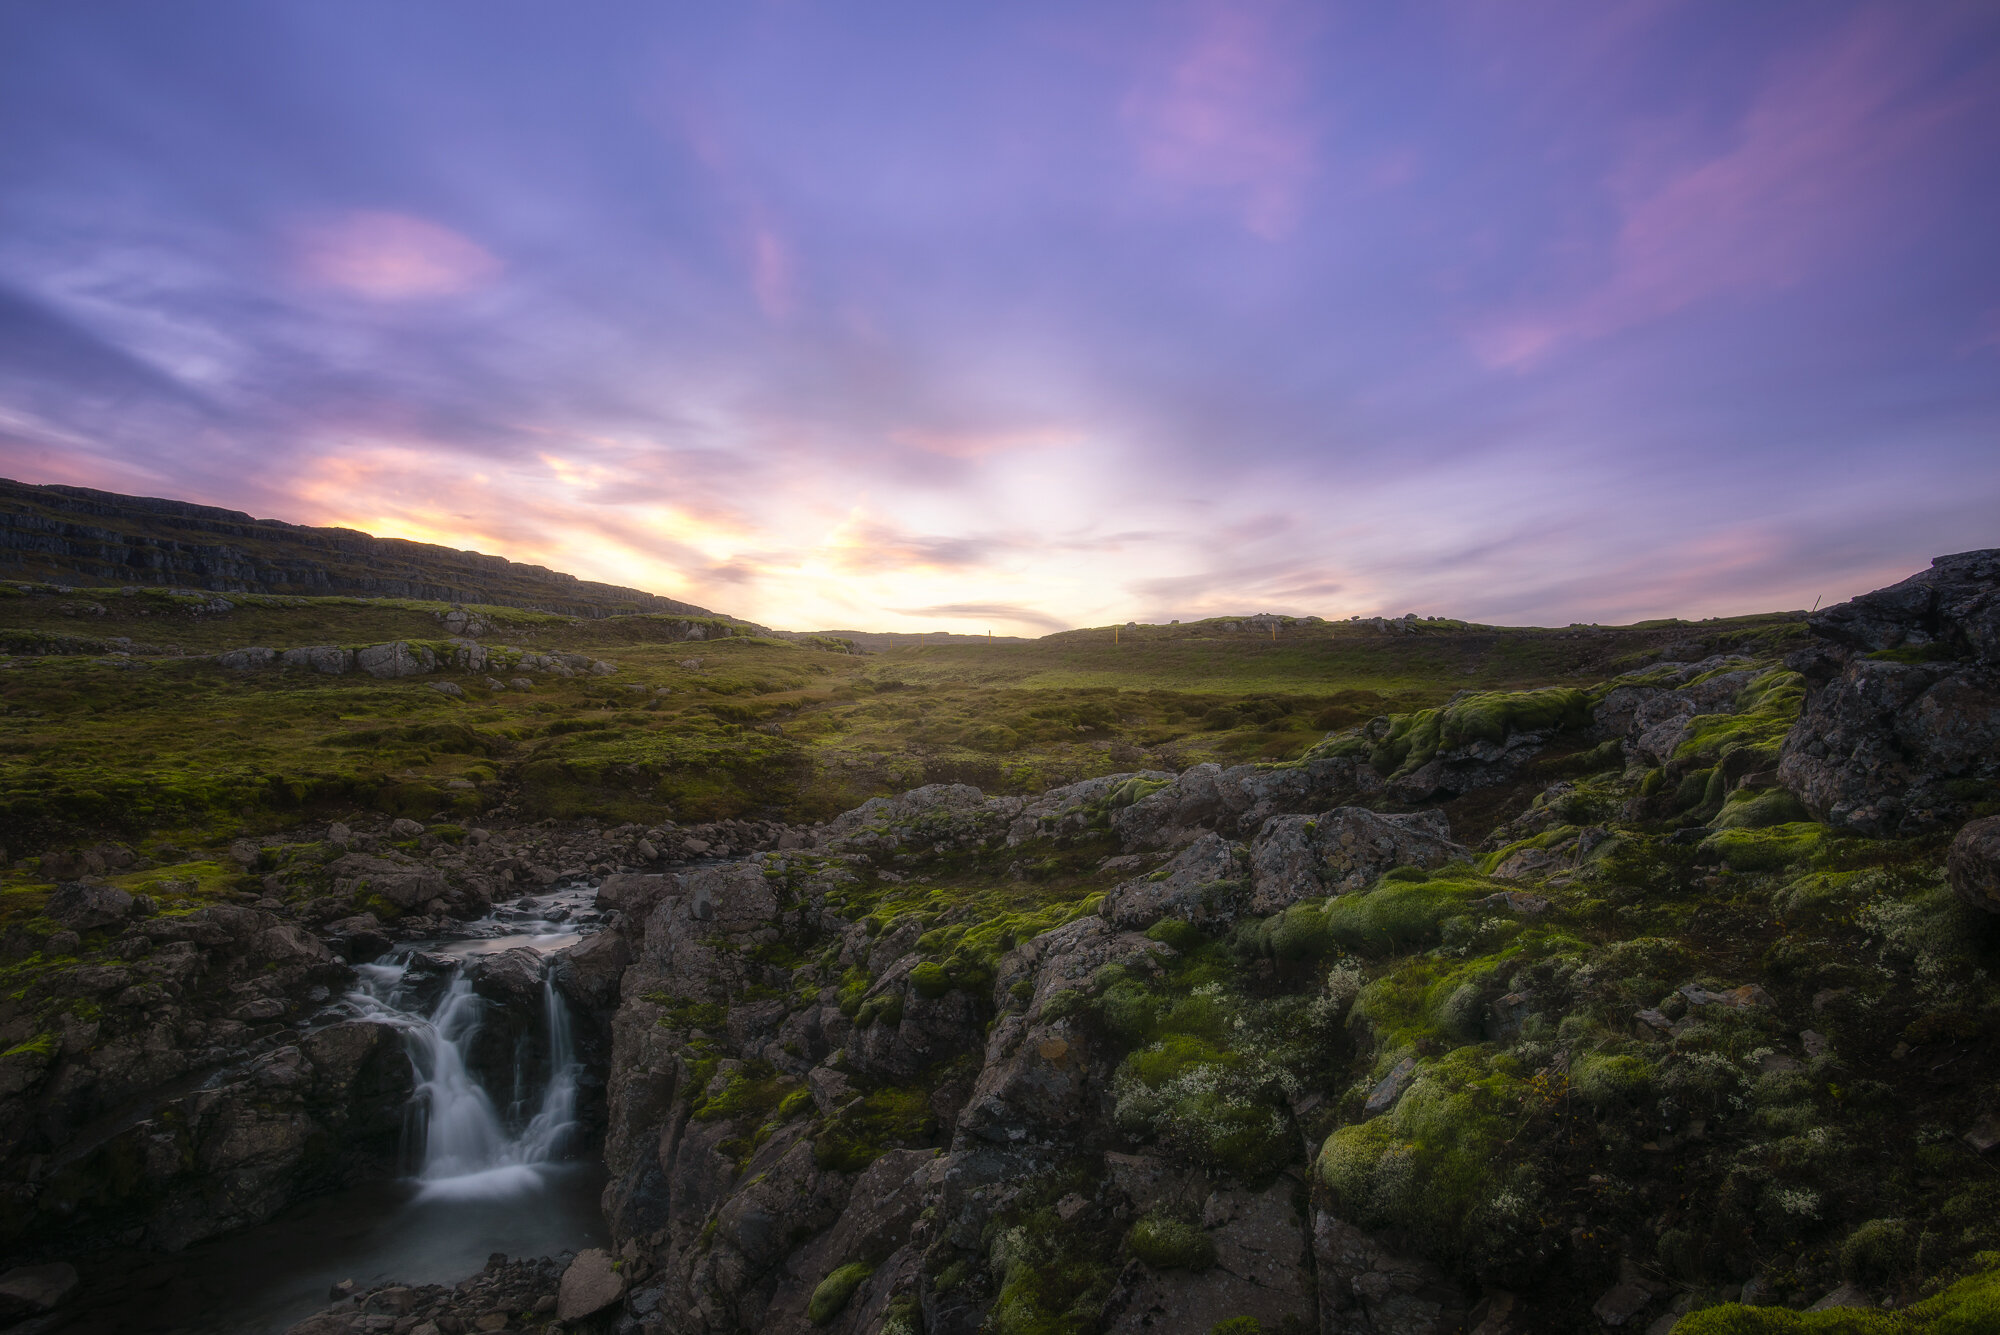 Iceland Landscape Photography: 'Oxi Pass Waterfall'